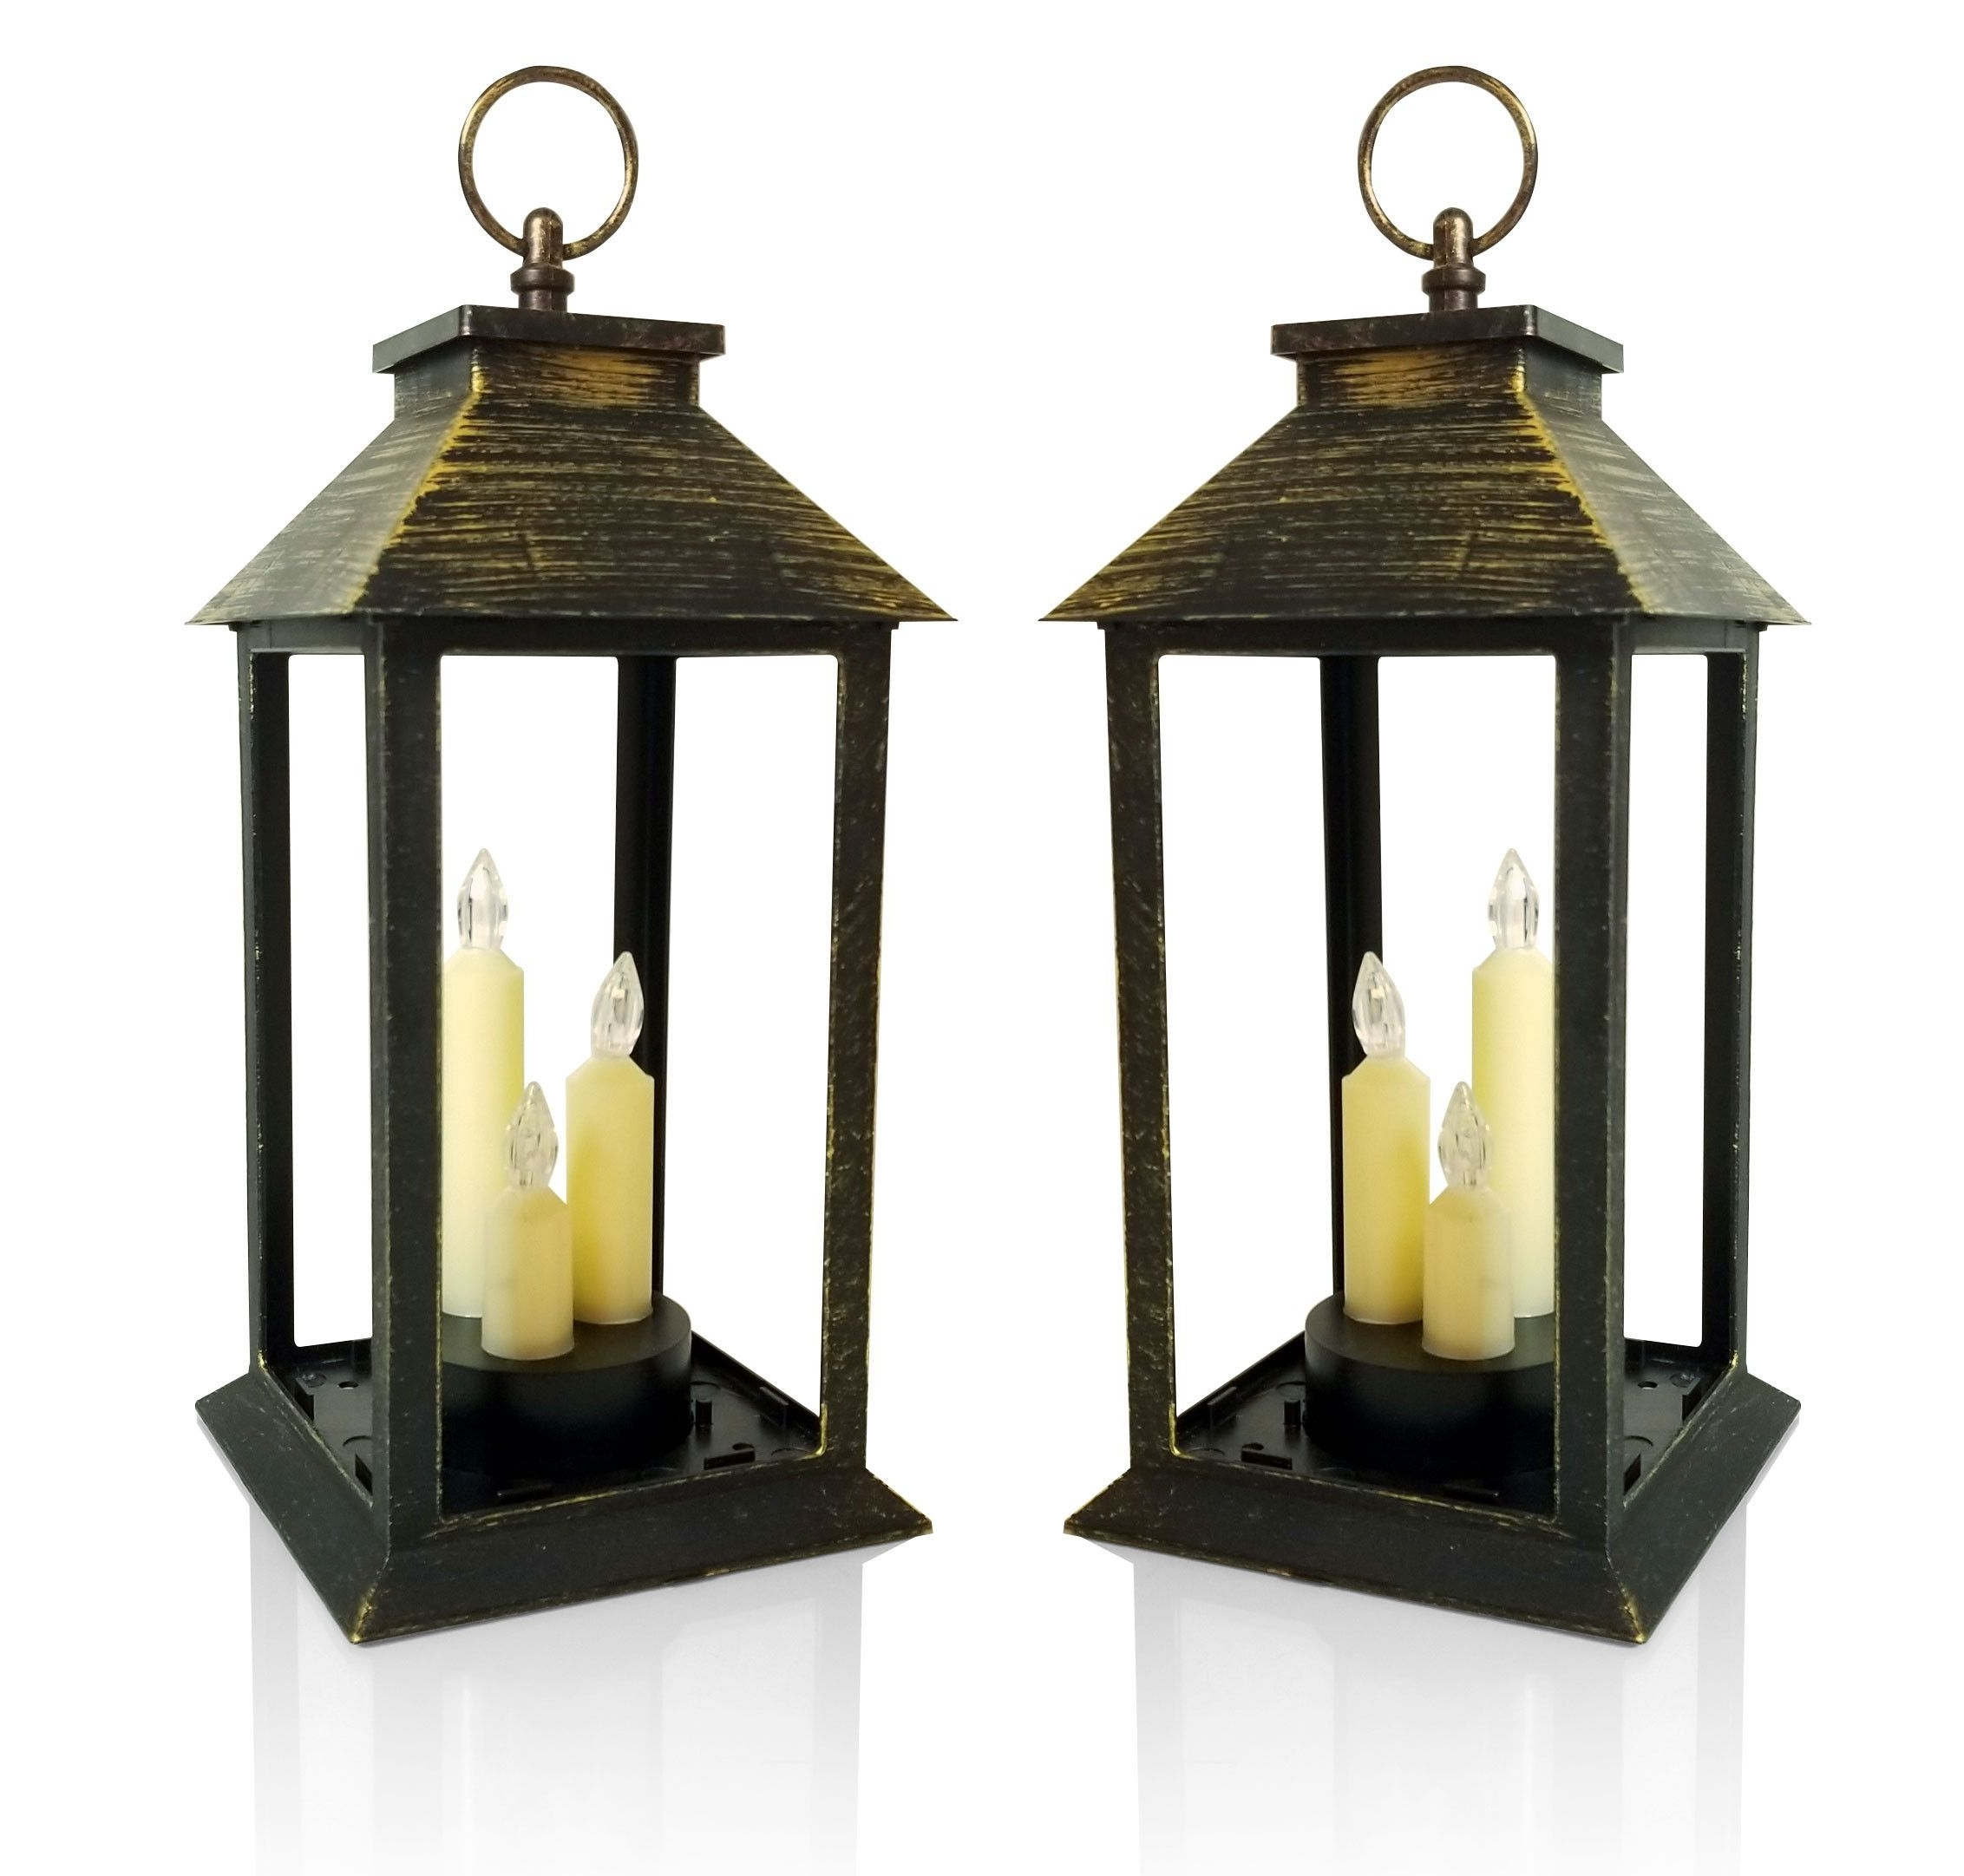 Outdoor Lanterns With Led Candles Throughout Latest Candle Lanterns – Set Of Antique Gold Lanterns With 3 Led Taper (View 12 of 20)